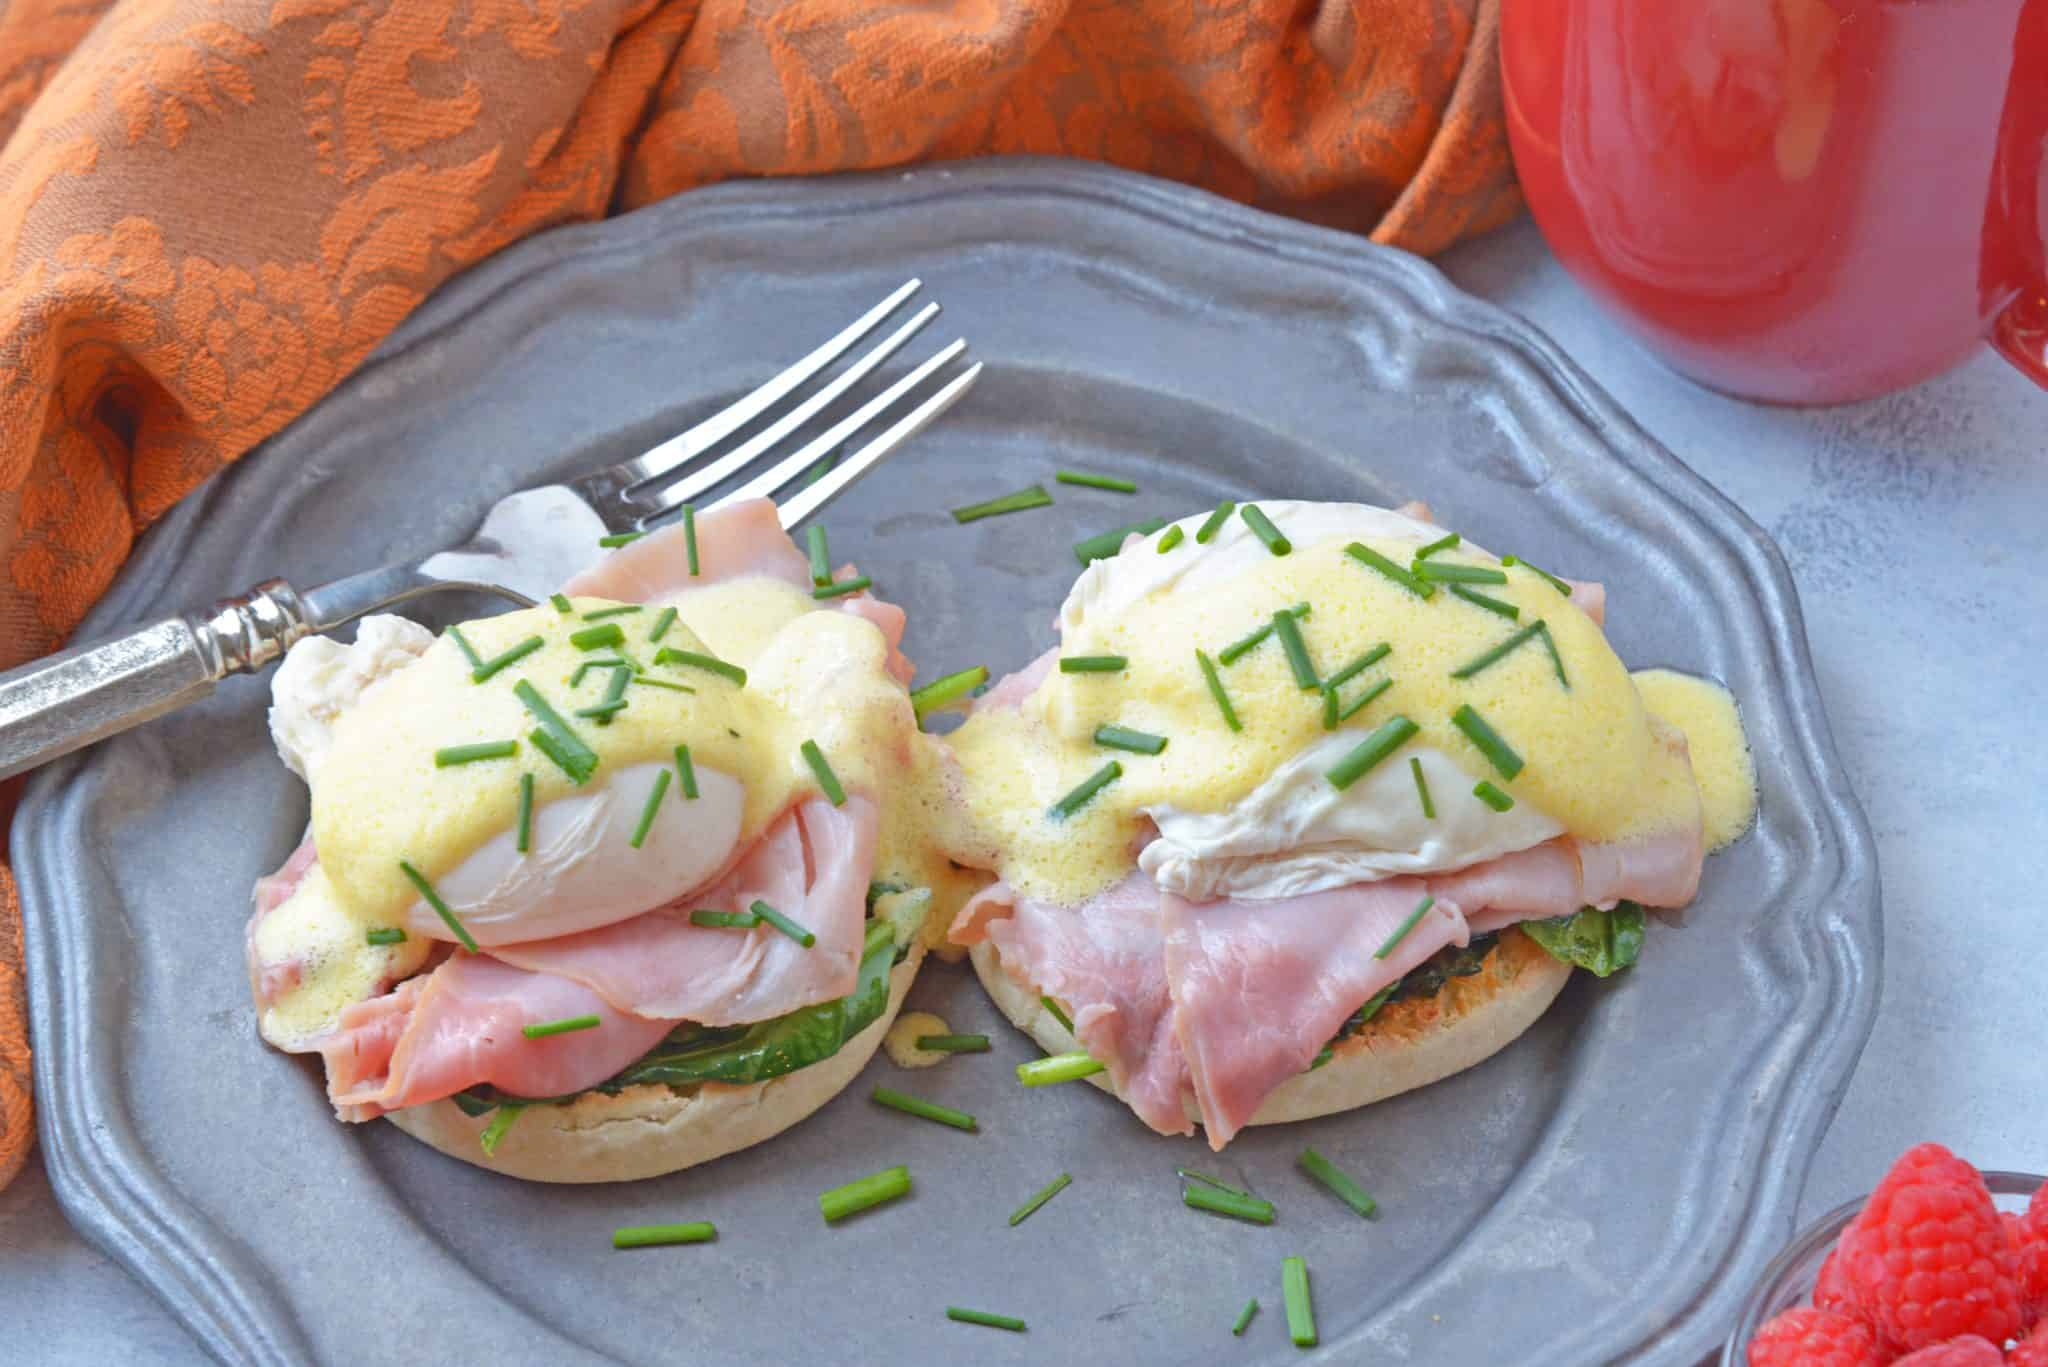 Simple Eggs Benedict tops toasted English muffins with wilted spinach, Canadian bacon, perfectly poached eggs and easy hollandaise sauce. #eggsbenedictrecipe #easyeggsbenedict www.savoryexperiments.com